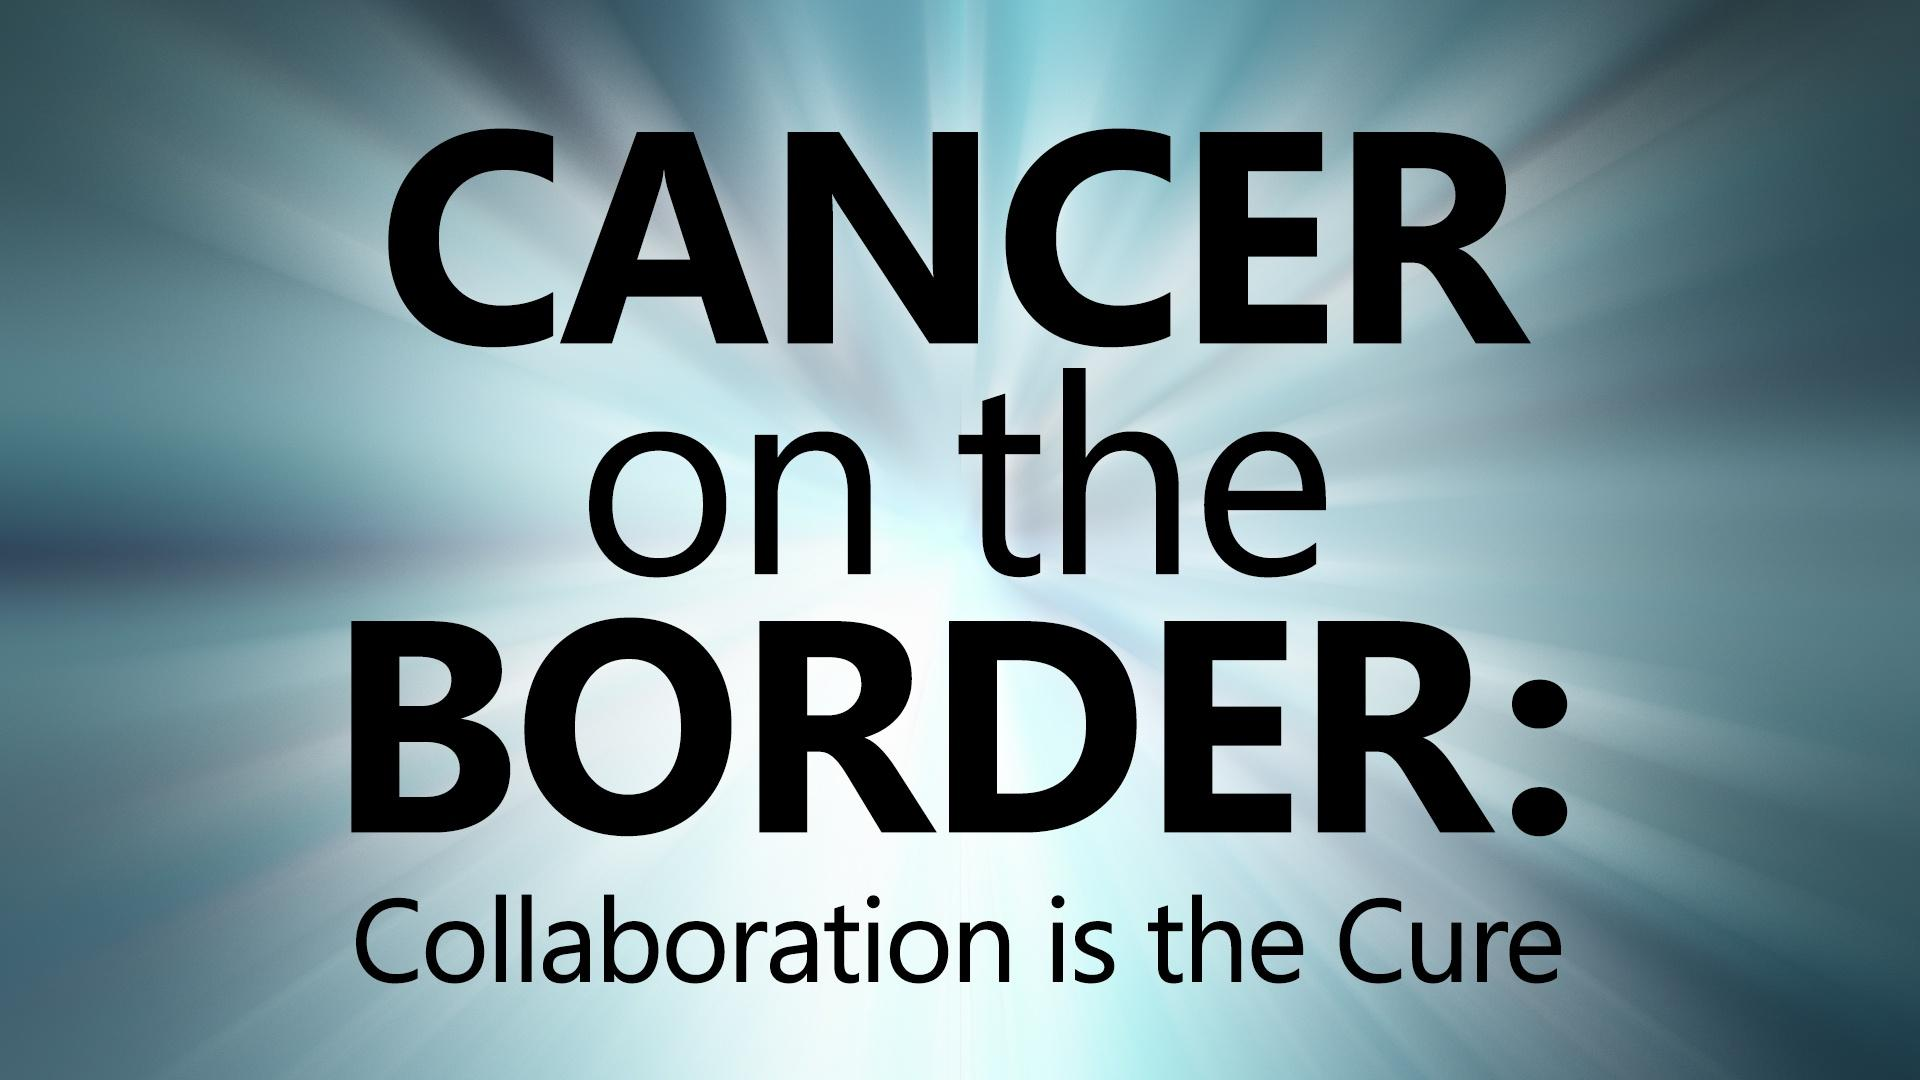 Cancer on the Border: Collaboration is the Cure